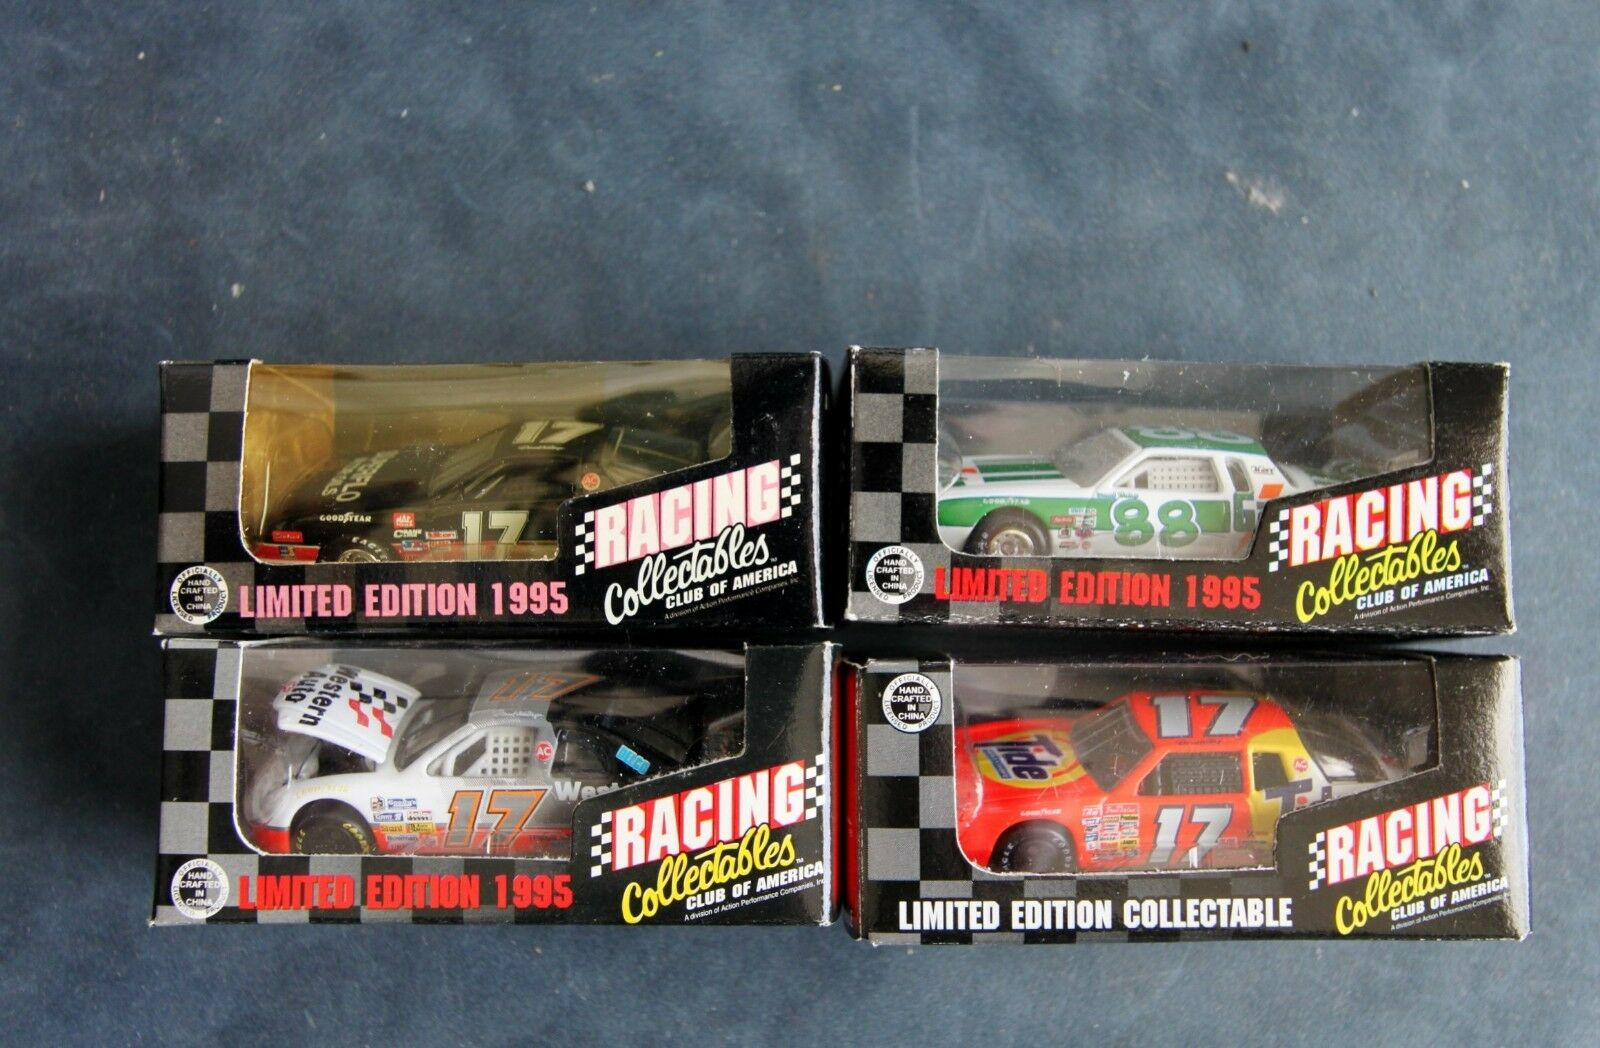 NASCAR - RACING COLLECTABLES - LIMITED EDITION 1995 - LOT OF 4 CARS